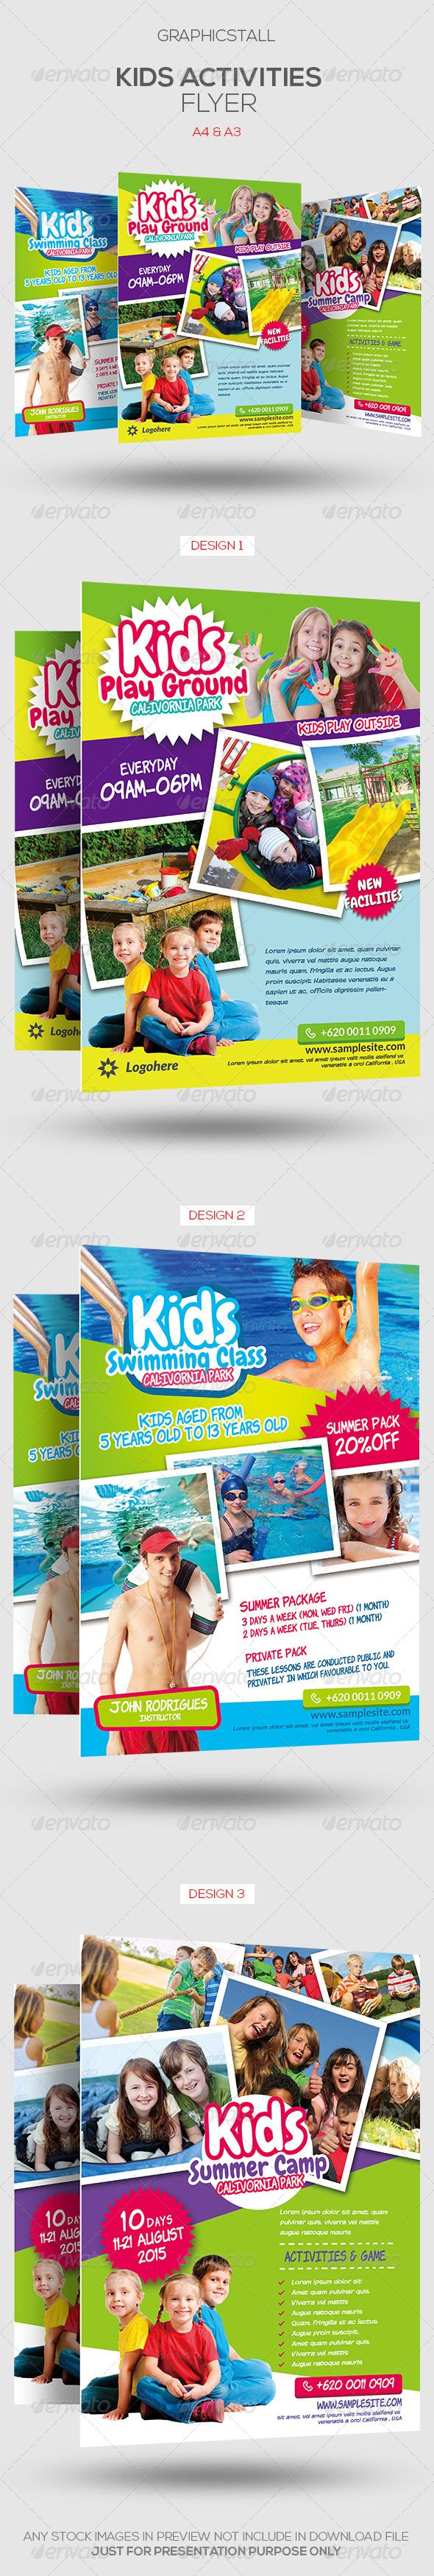 Kids Activities Flyer Template - Corporate Flyers | Download http://graphicriver.net/item/kids-activities-flyer-template/7474925?ref=sinzo